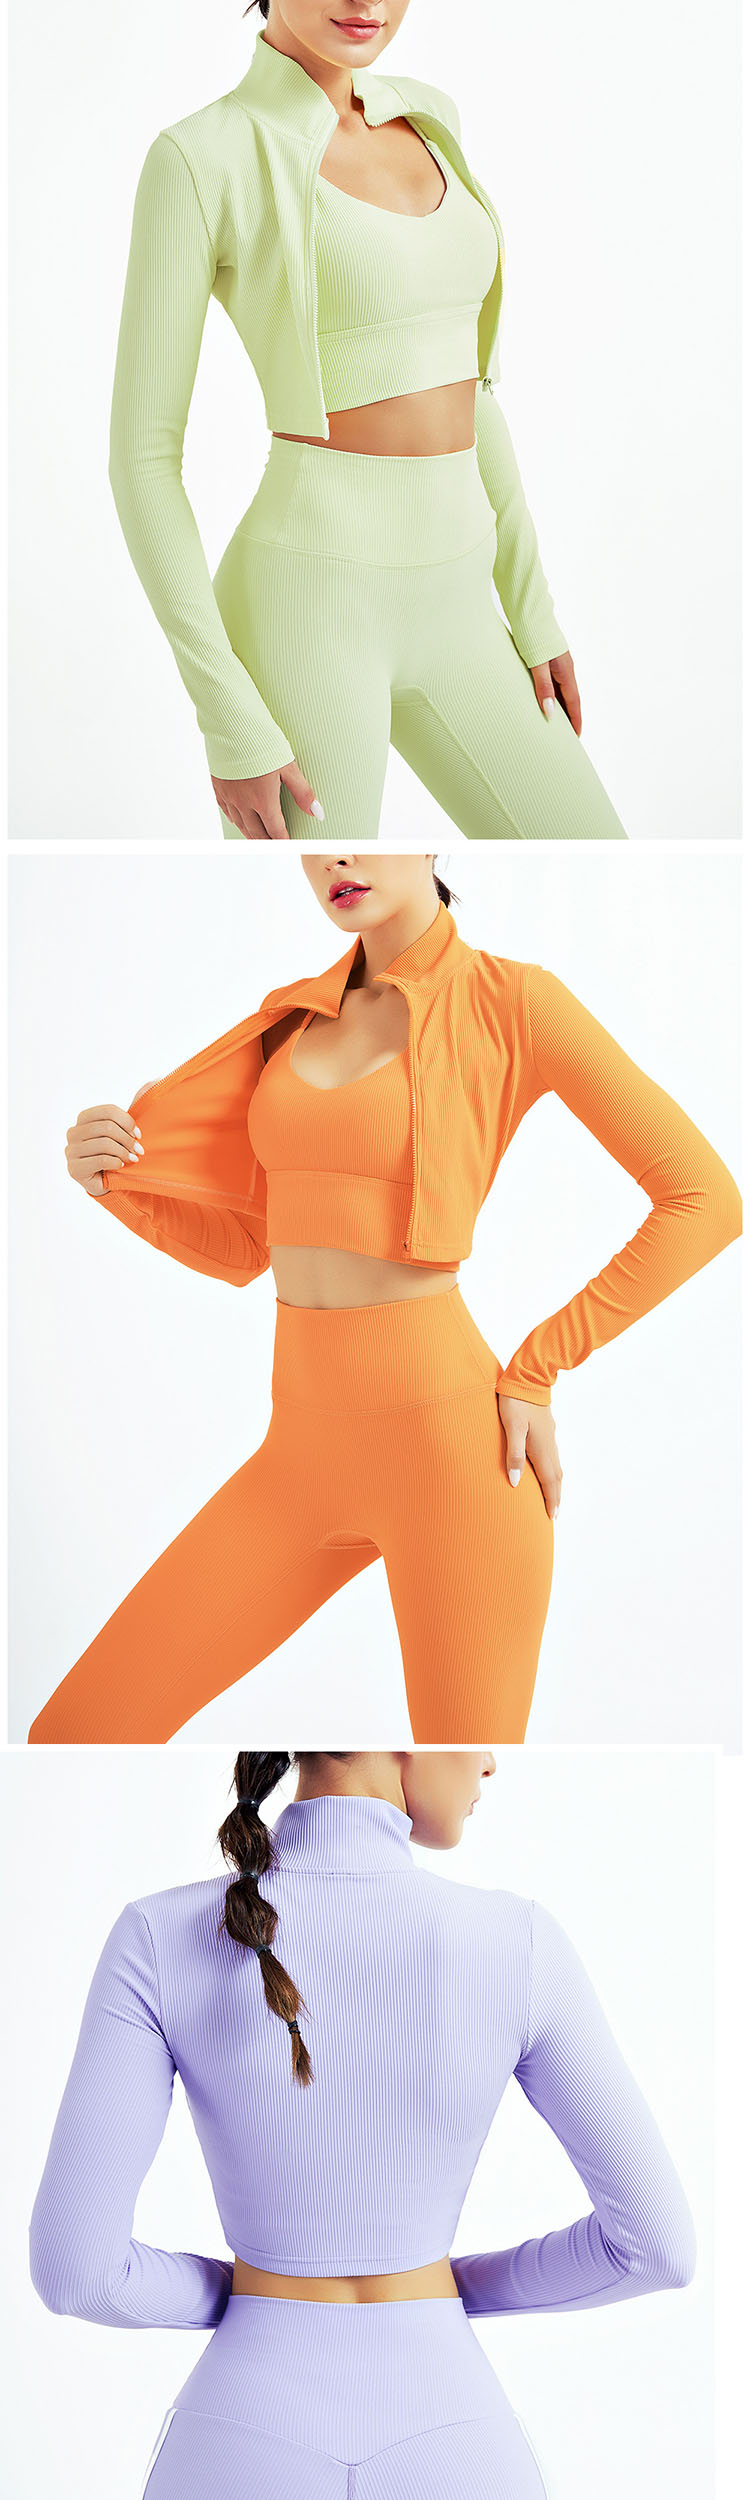 Adopts elastic fabric to fit the body curve and exercise without burden.